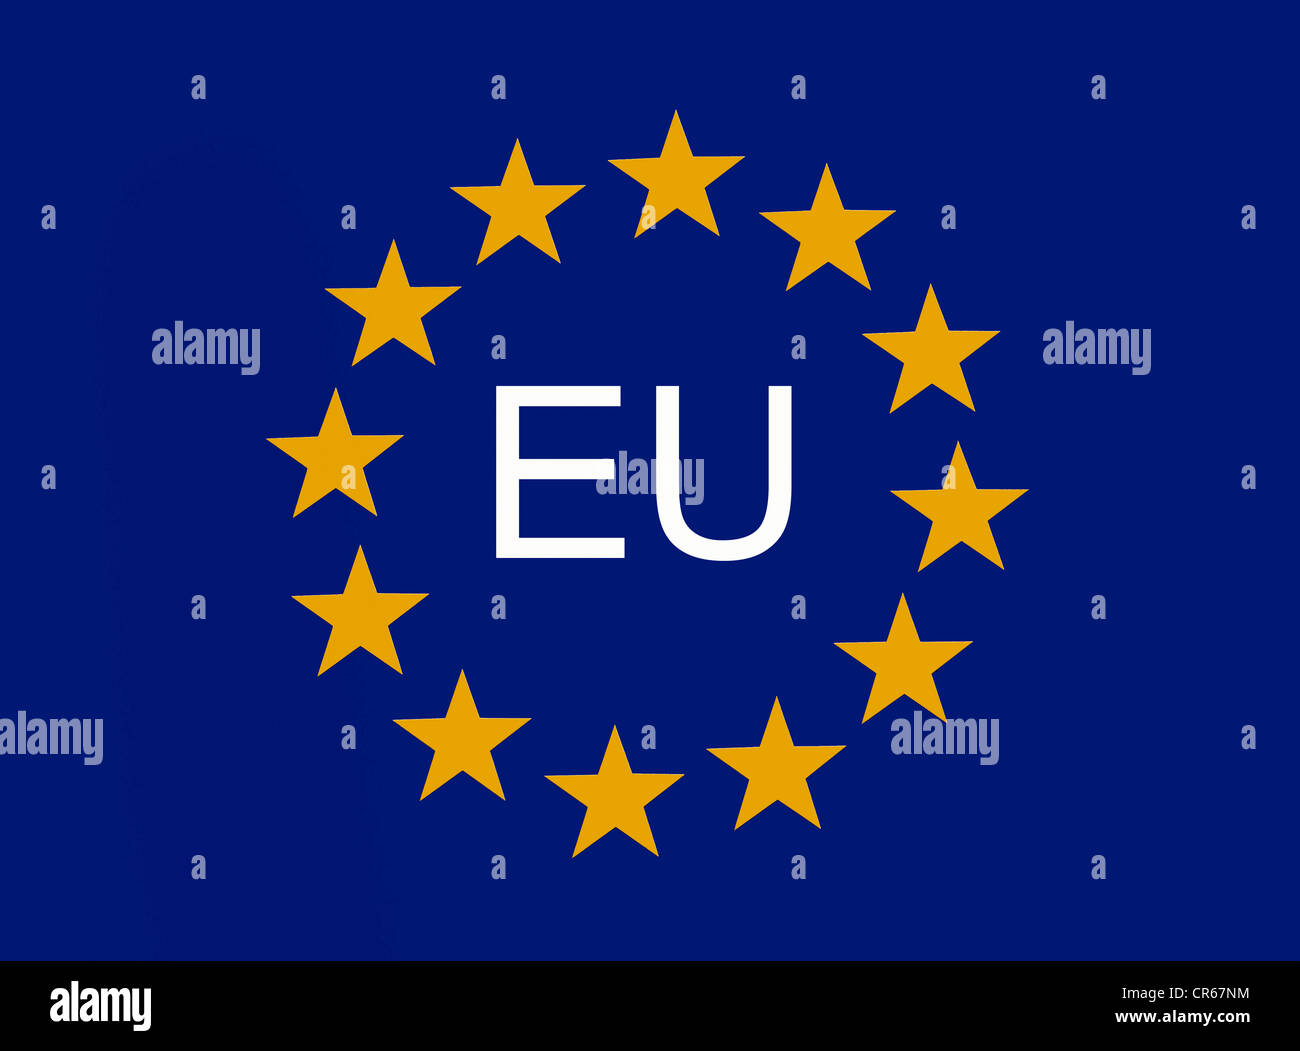 European symbol, 12 EU stars of the European Union - Stock Image